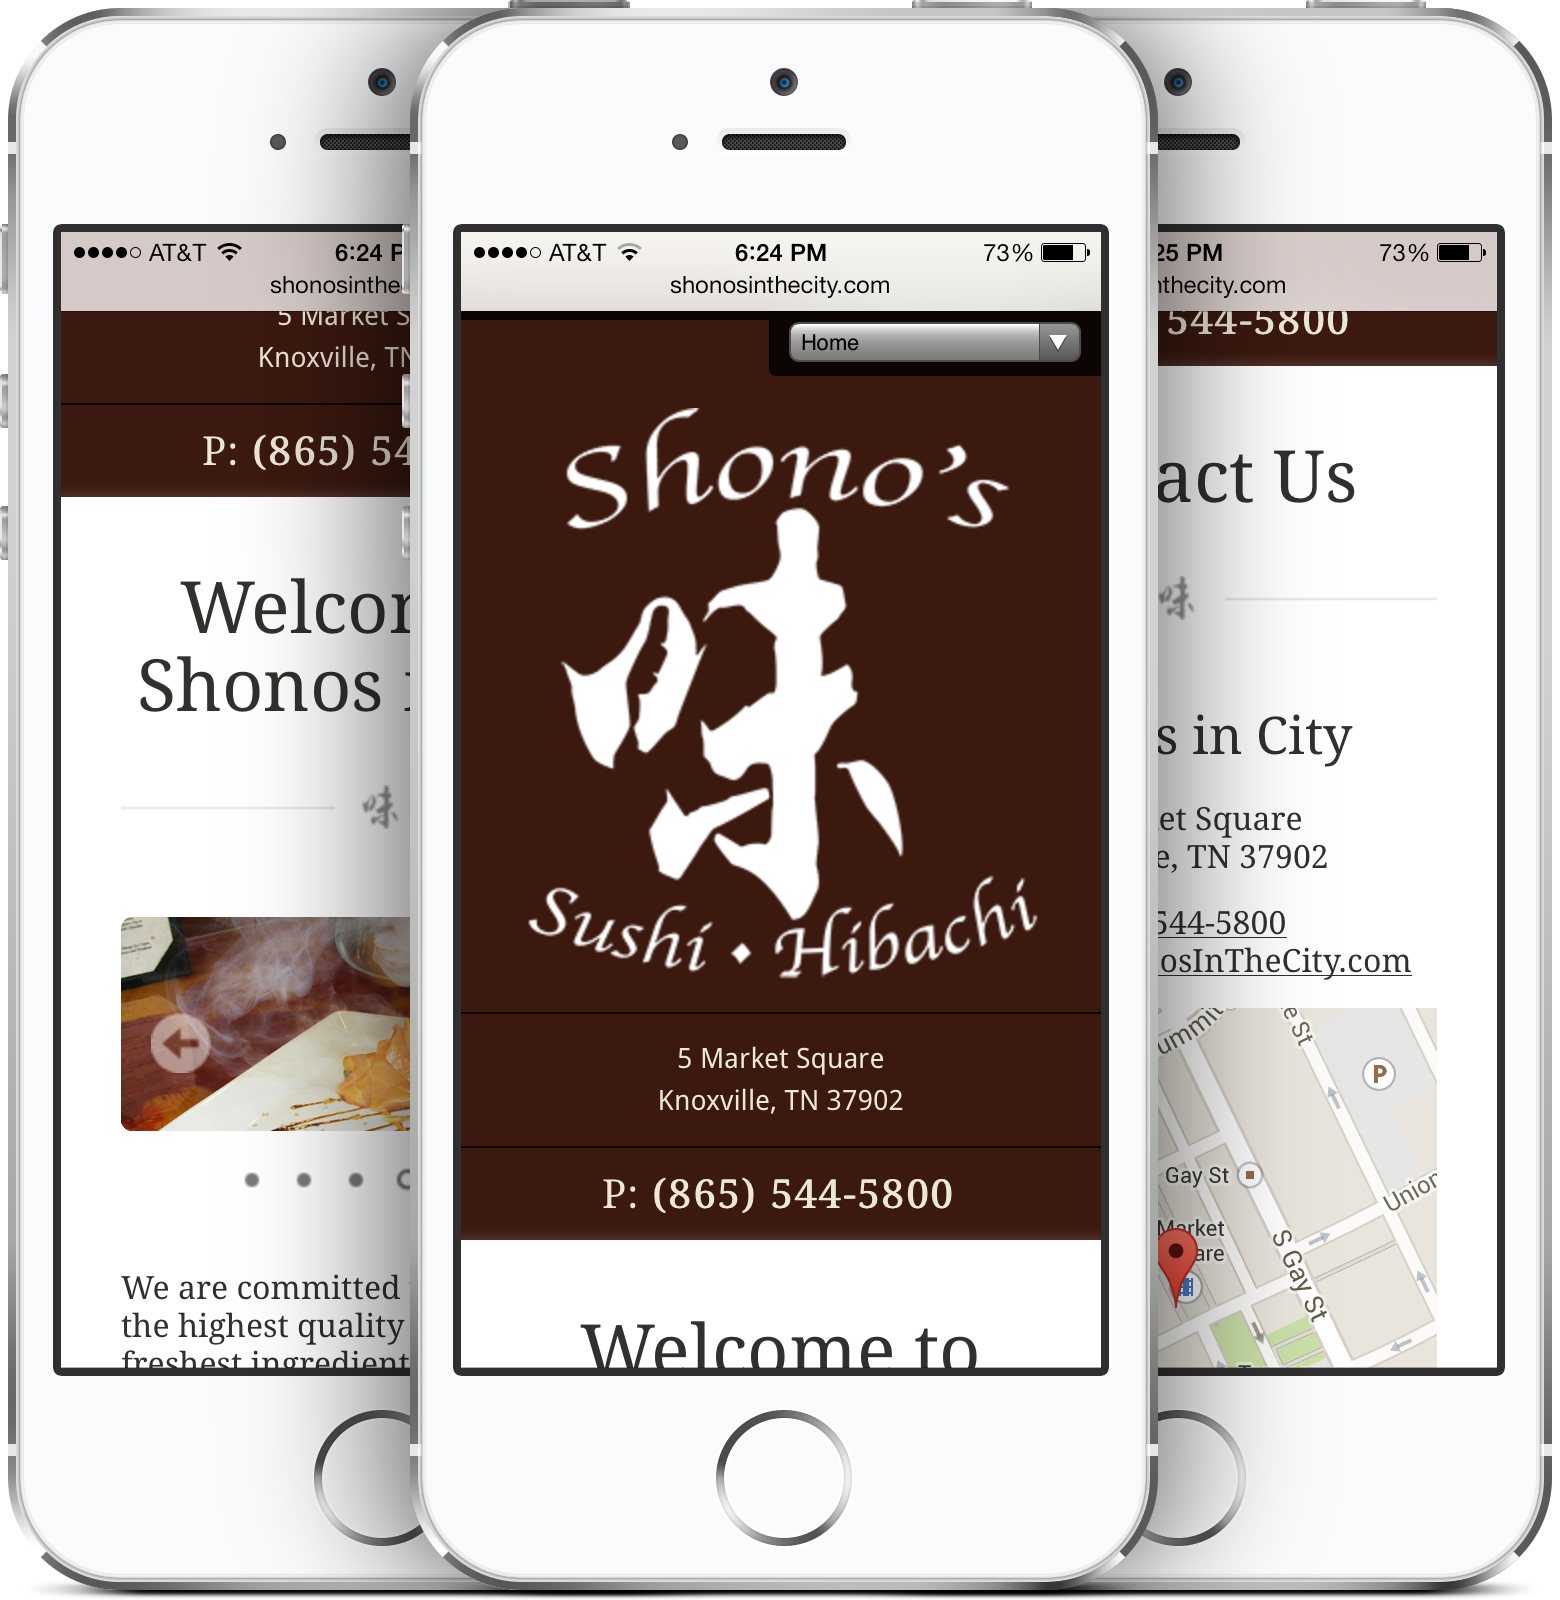 Shonos in City Responsive Design on an iPhone